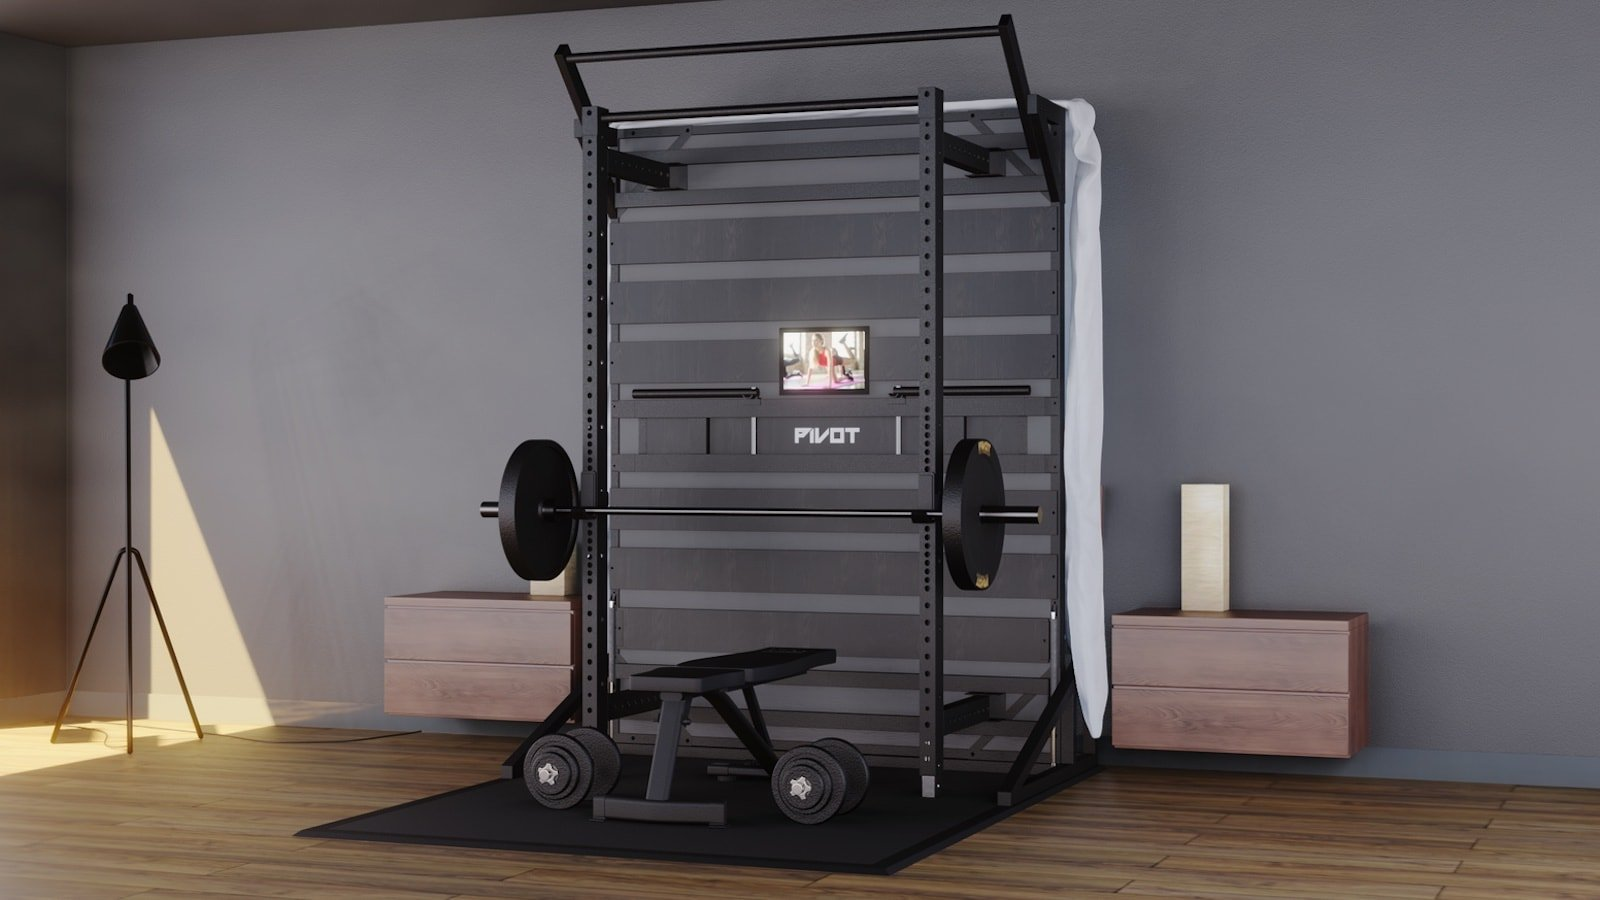 PIVOT Fitness Bed bedroom home gym is both a bed frame and indoor workout center